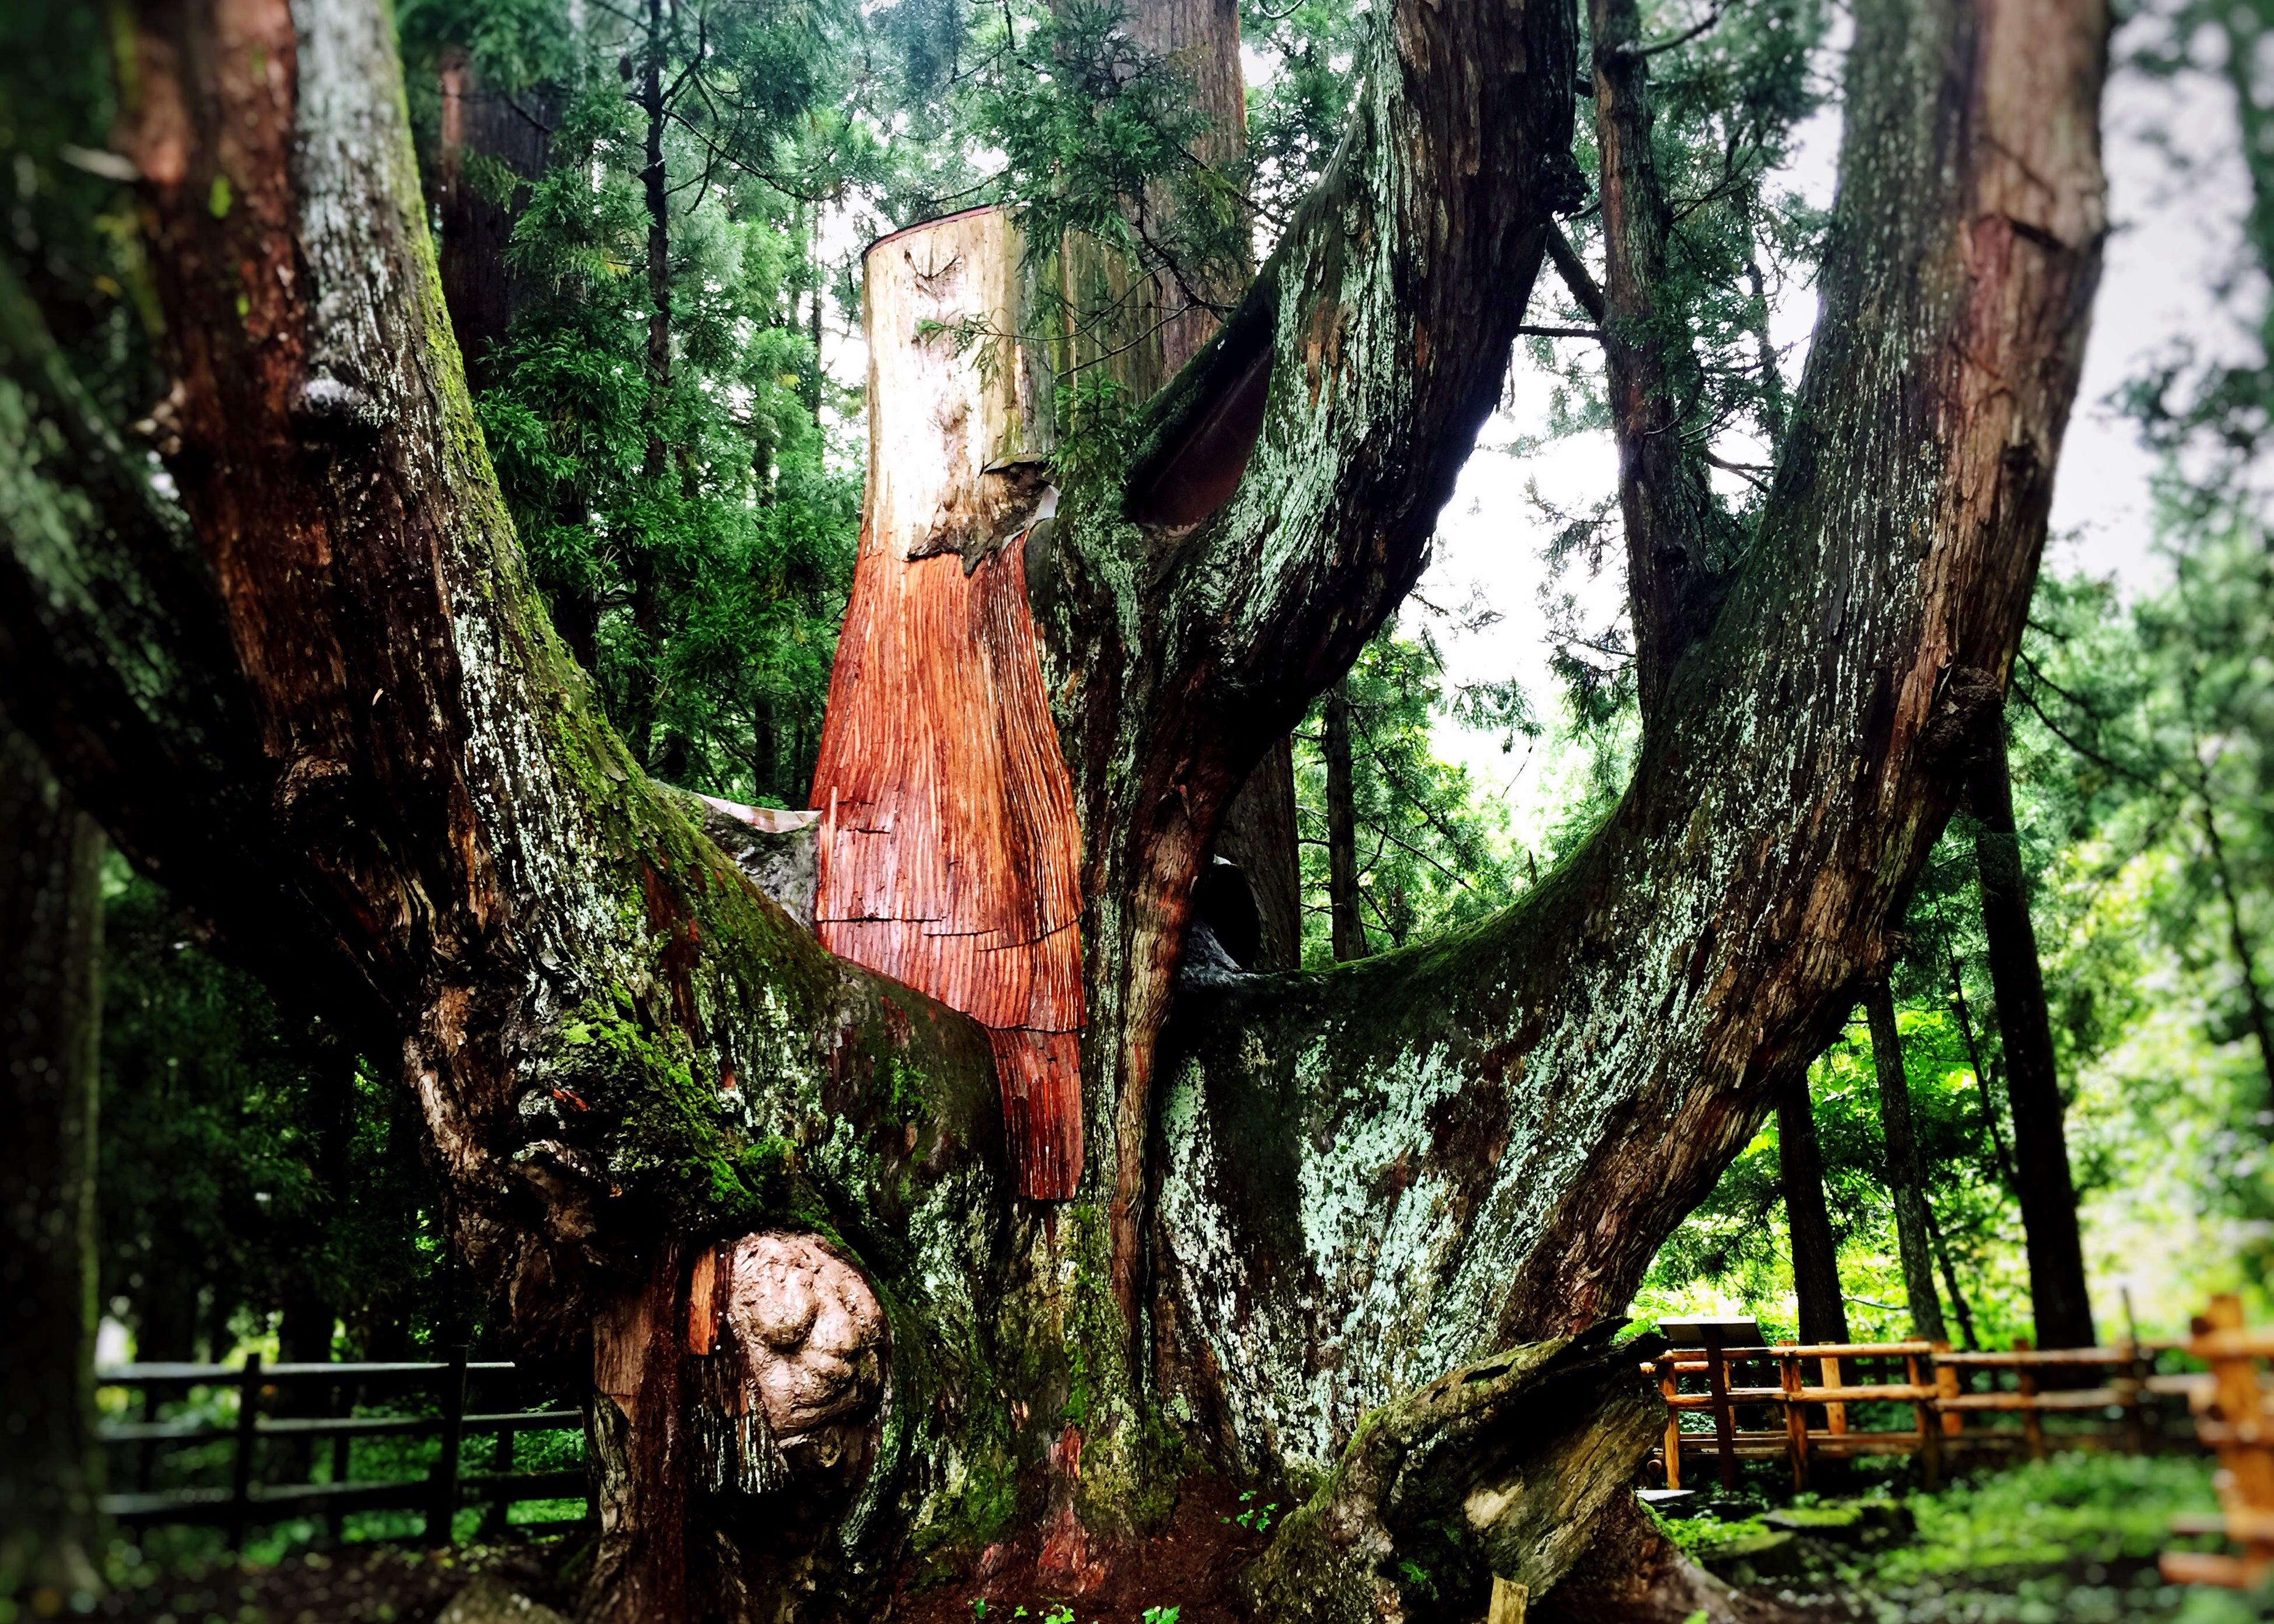 tree, tree trunk, forest, growth, wood - material, branch, close-up, day, focus on foreground, old, nature, outdoors, art and craft, art, no people, creativity, tranquility, human representation, weathered, cemetery